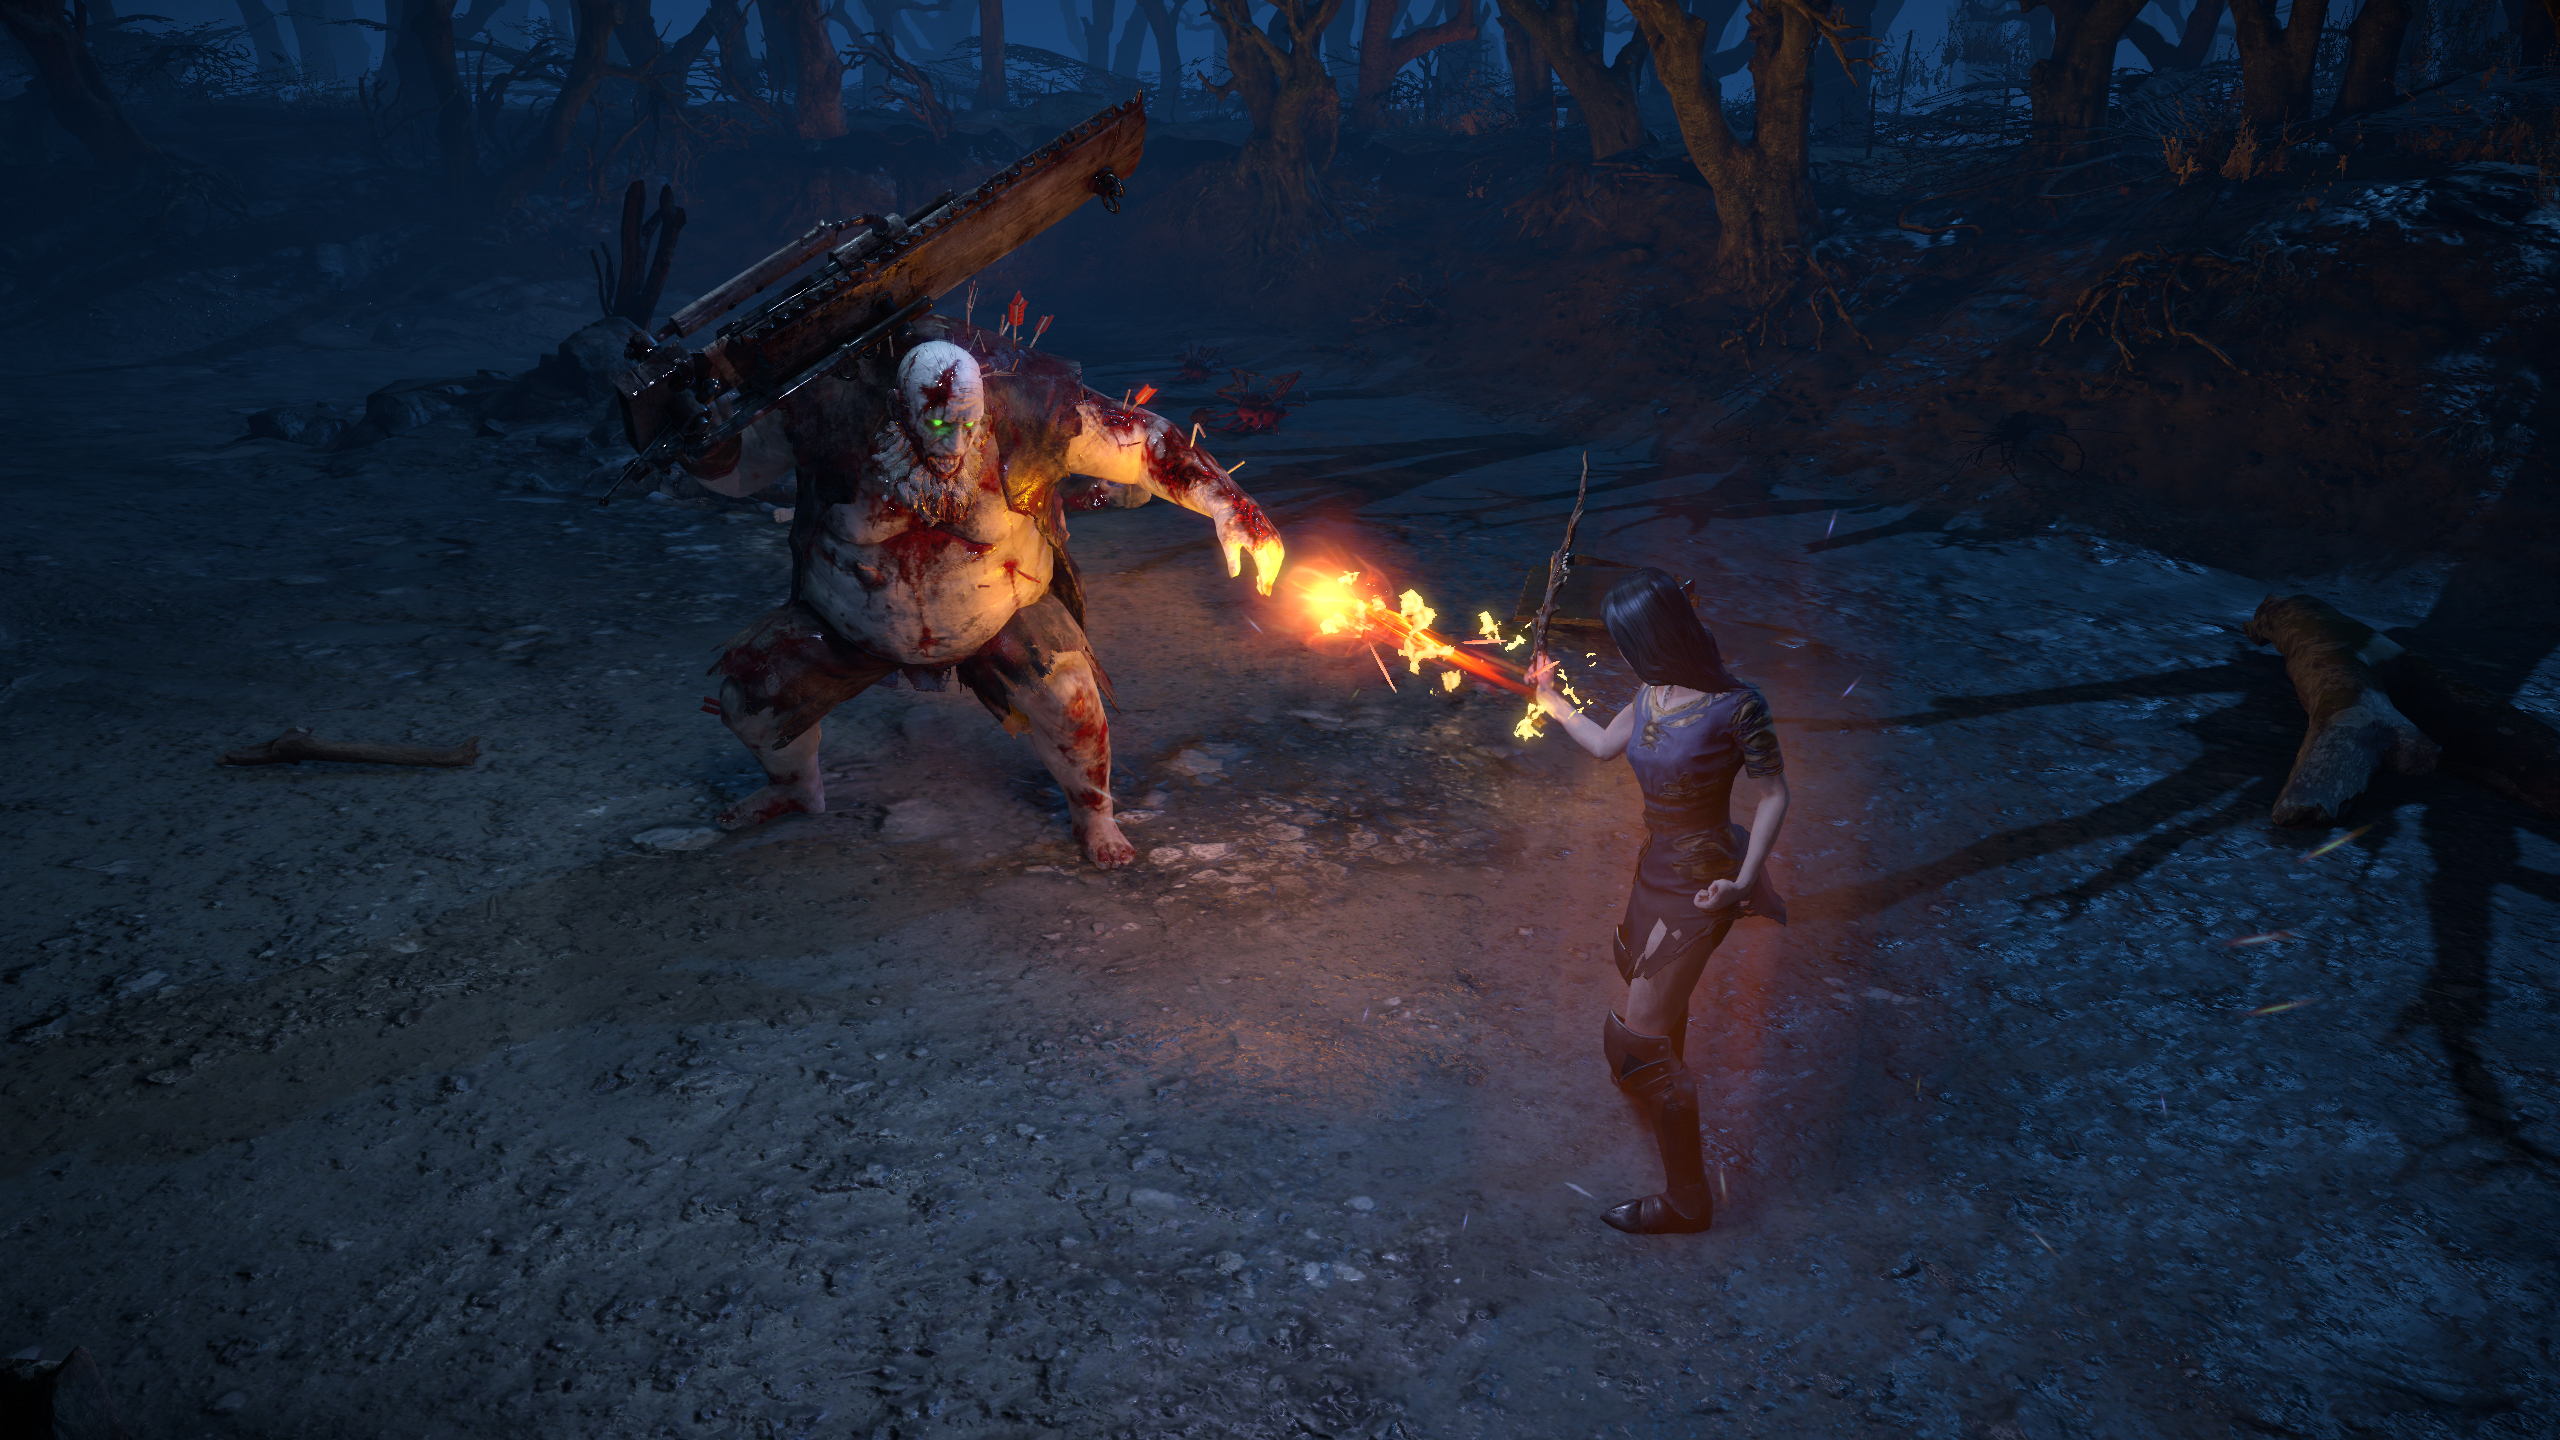 Path of Exile 2 reveals its gorgeous second act with a new trailer and 20-minute gameplay video